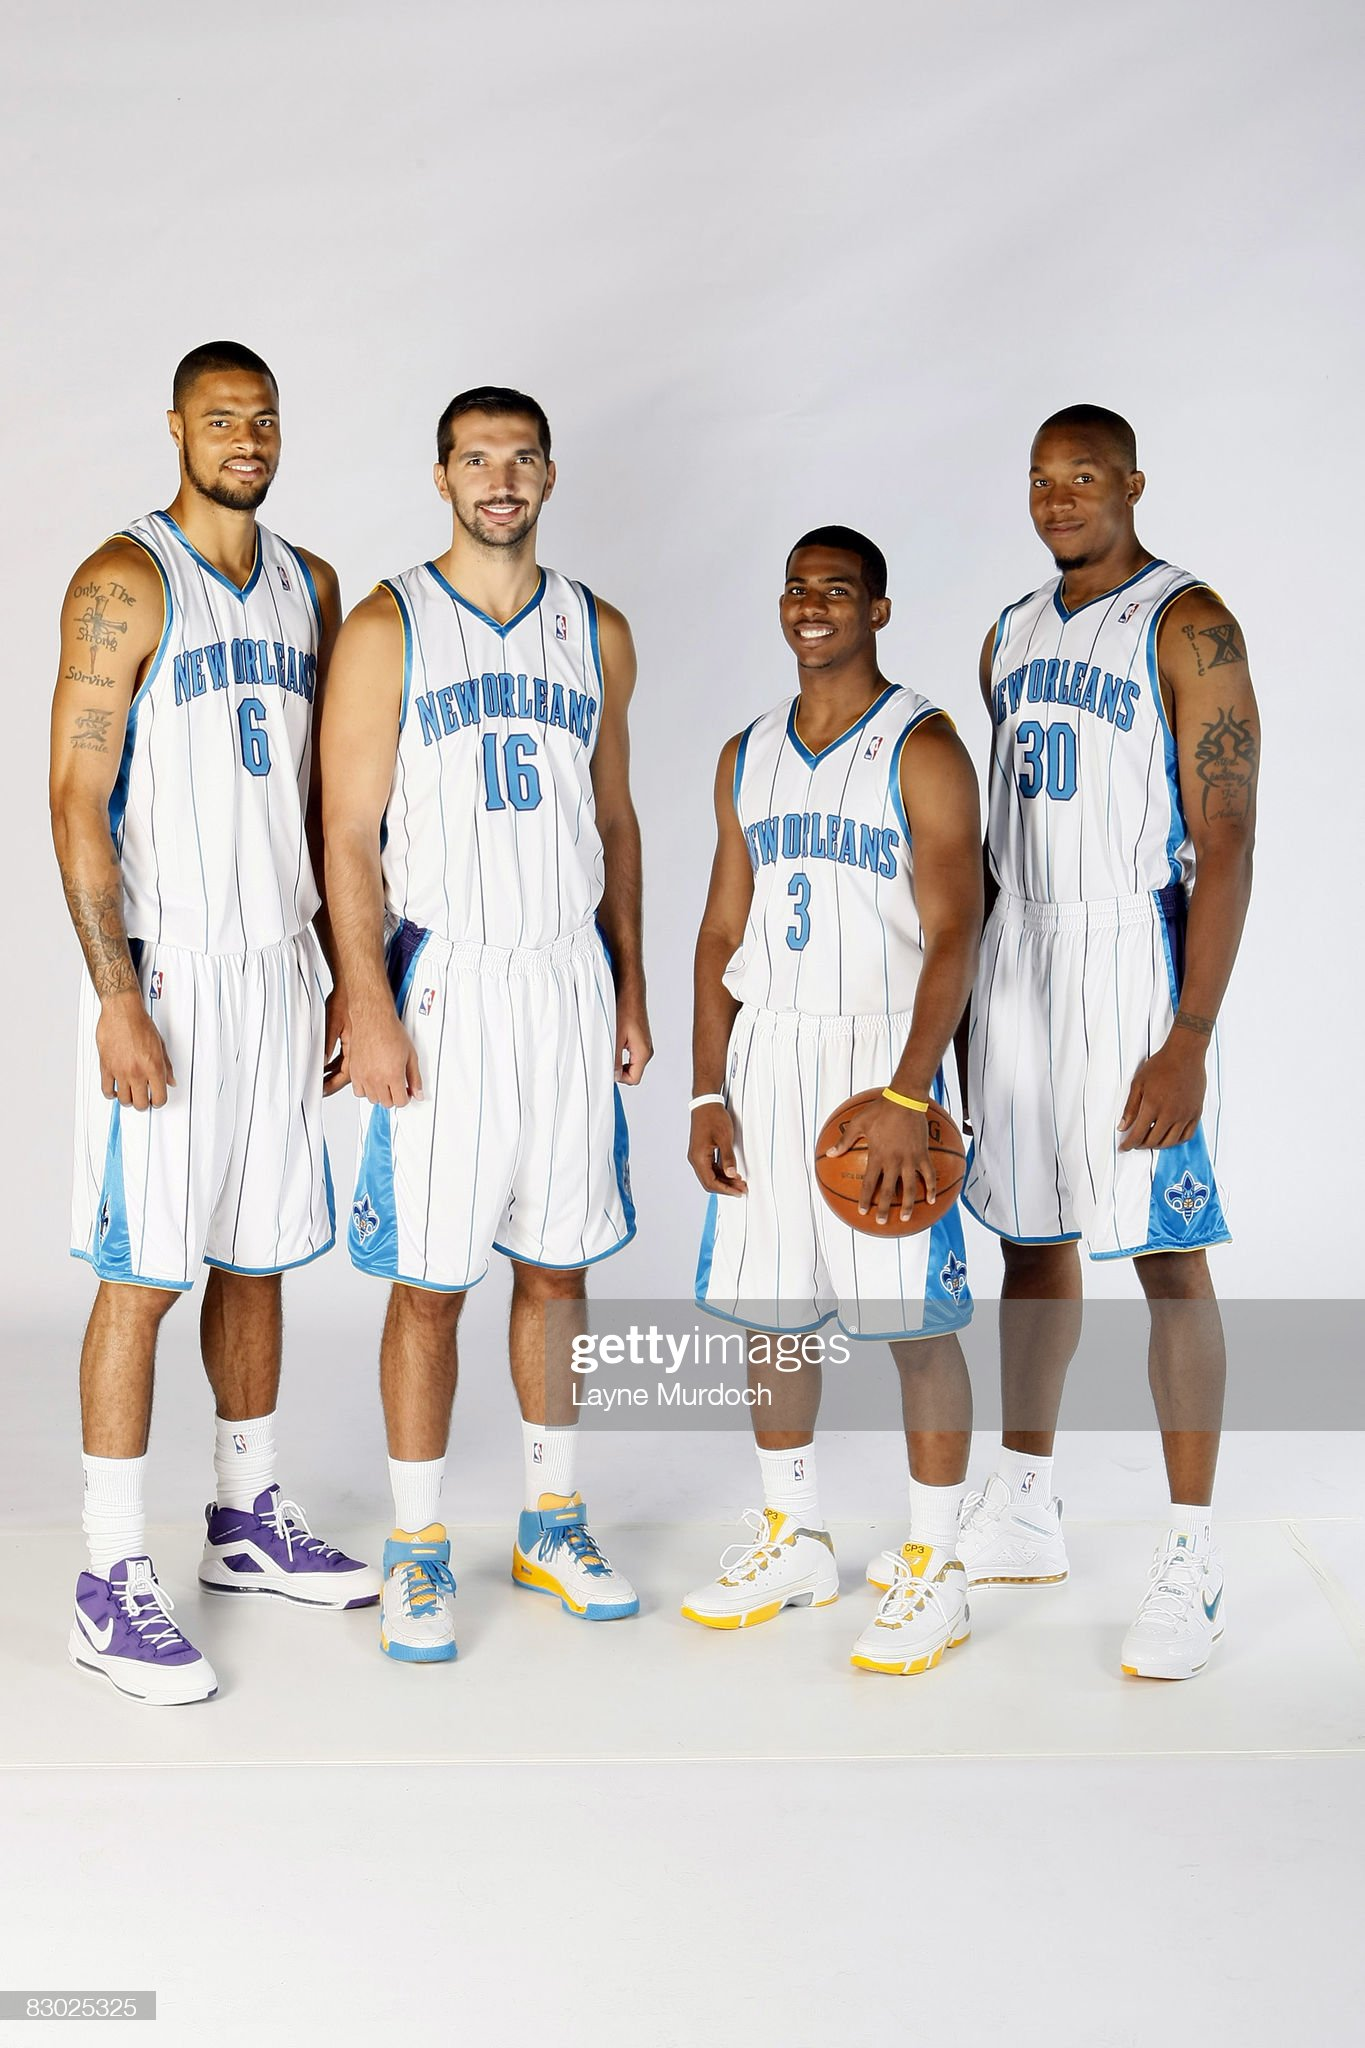 ¿Cuánto mide Peja Stojakovic? - Altura - Real height Tyson-chandler-peja-stojakovic-chris-paul-and-david-west-of-the-new-picture-id83025325?s=2048x2048